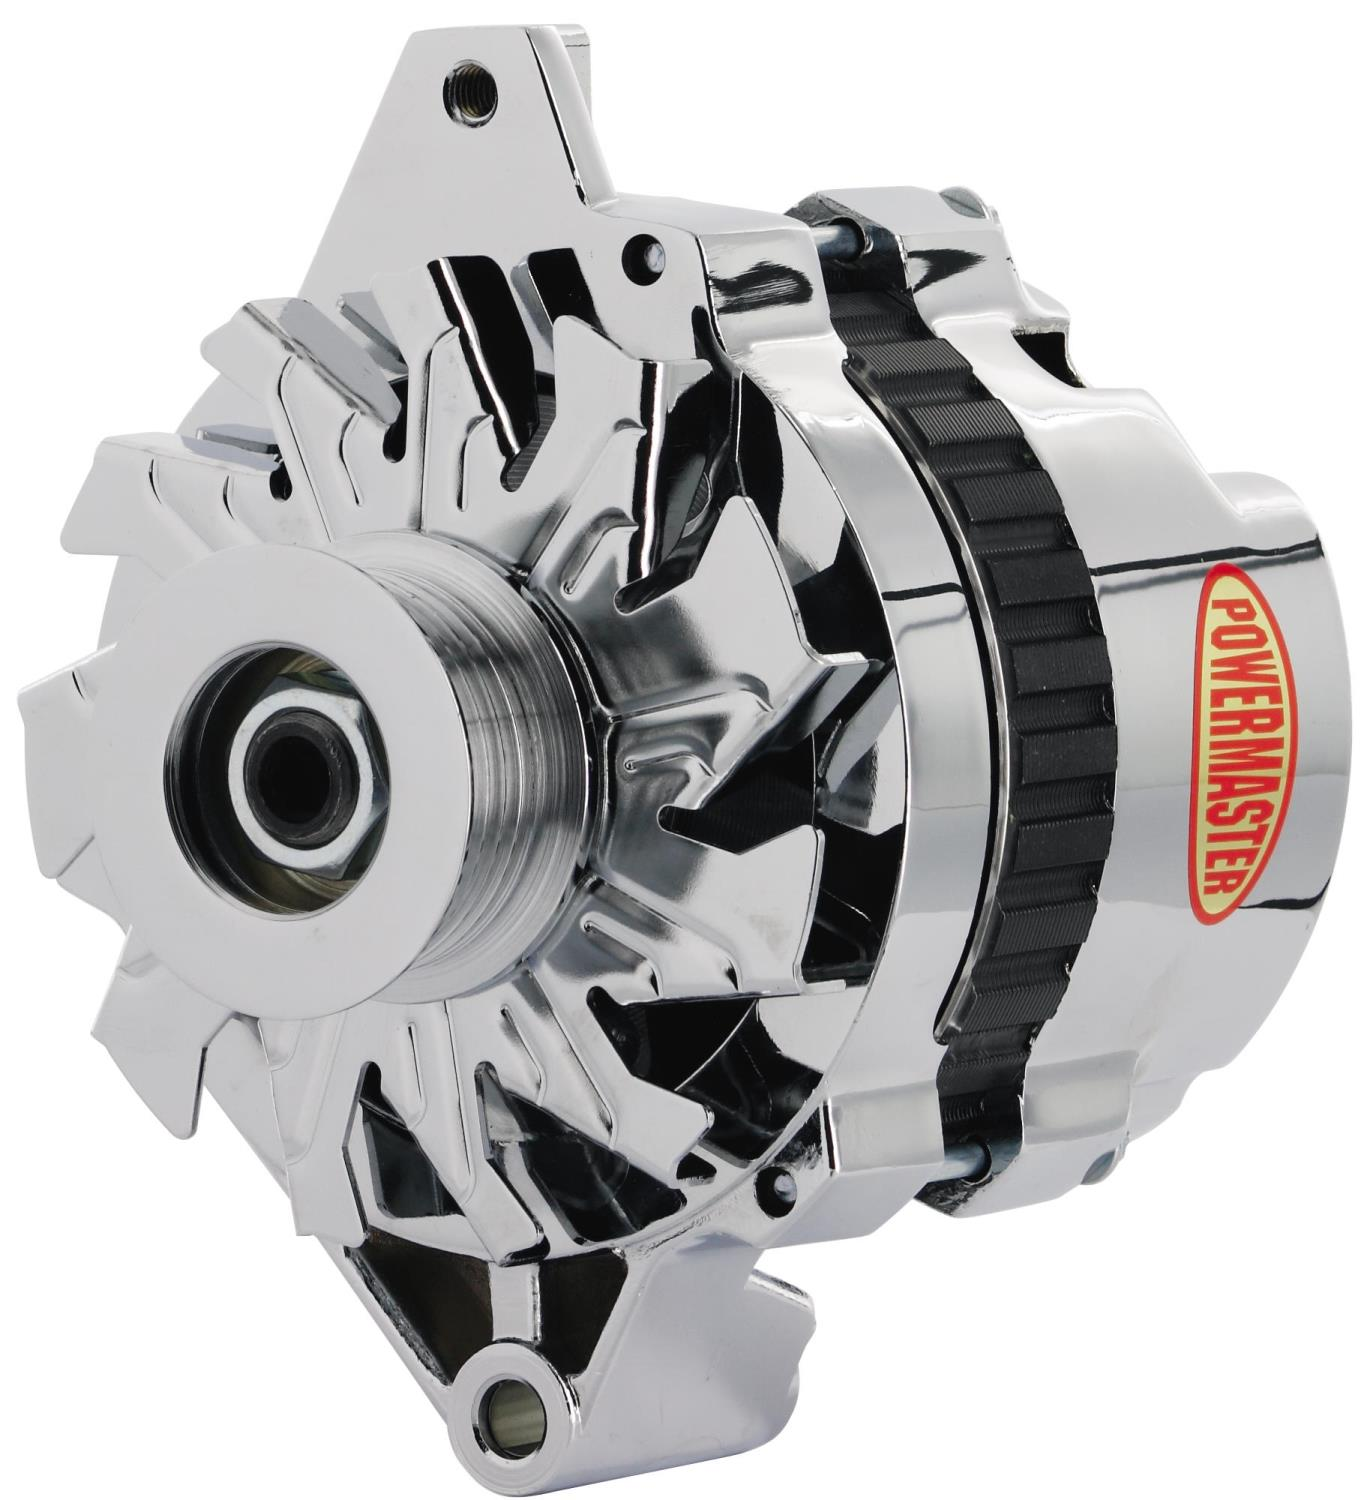 Powermaster 48137 - Powermaster GM CS130 Style Alternators